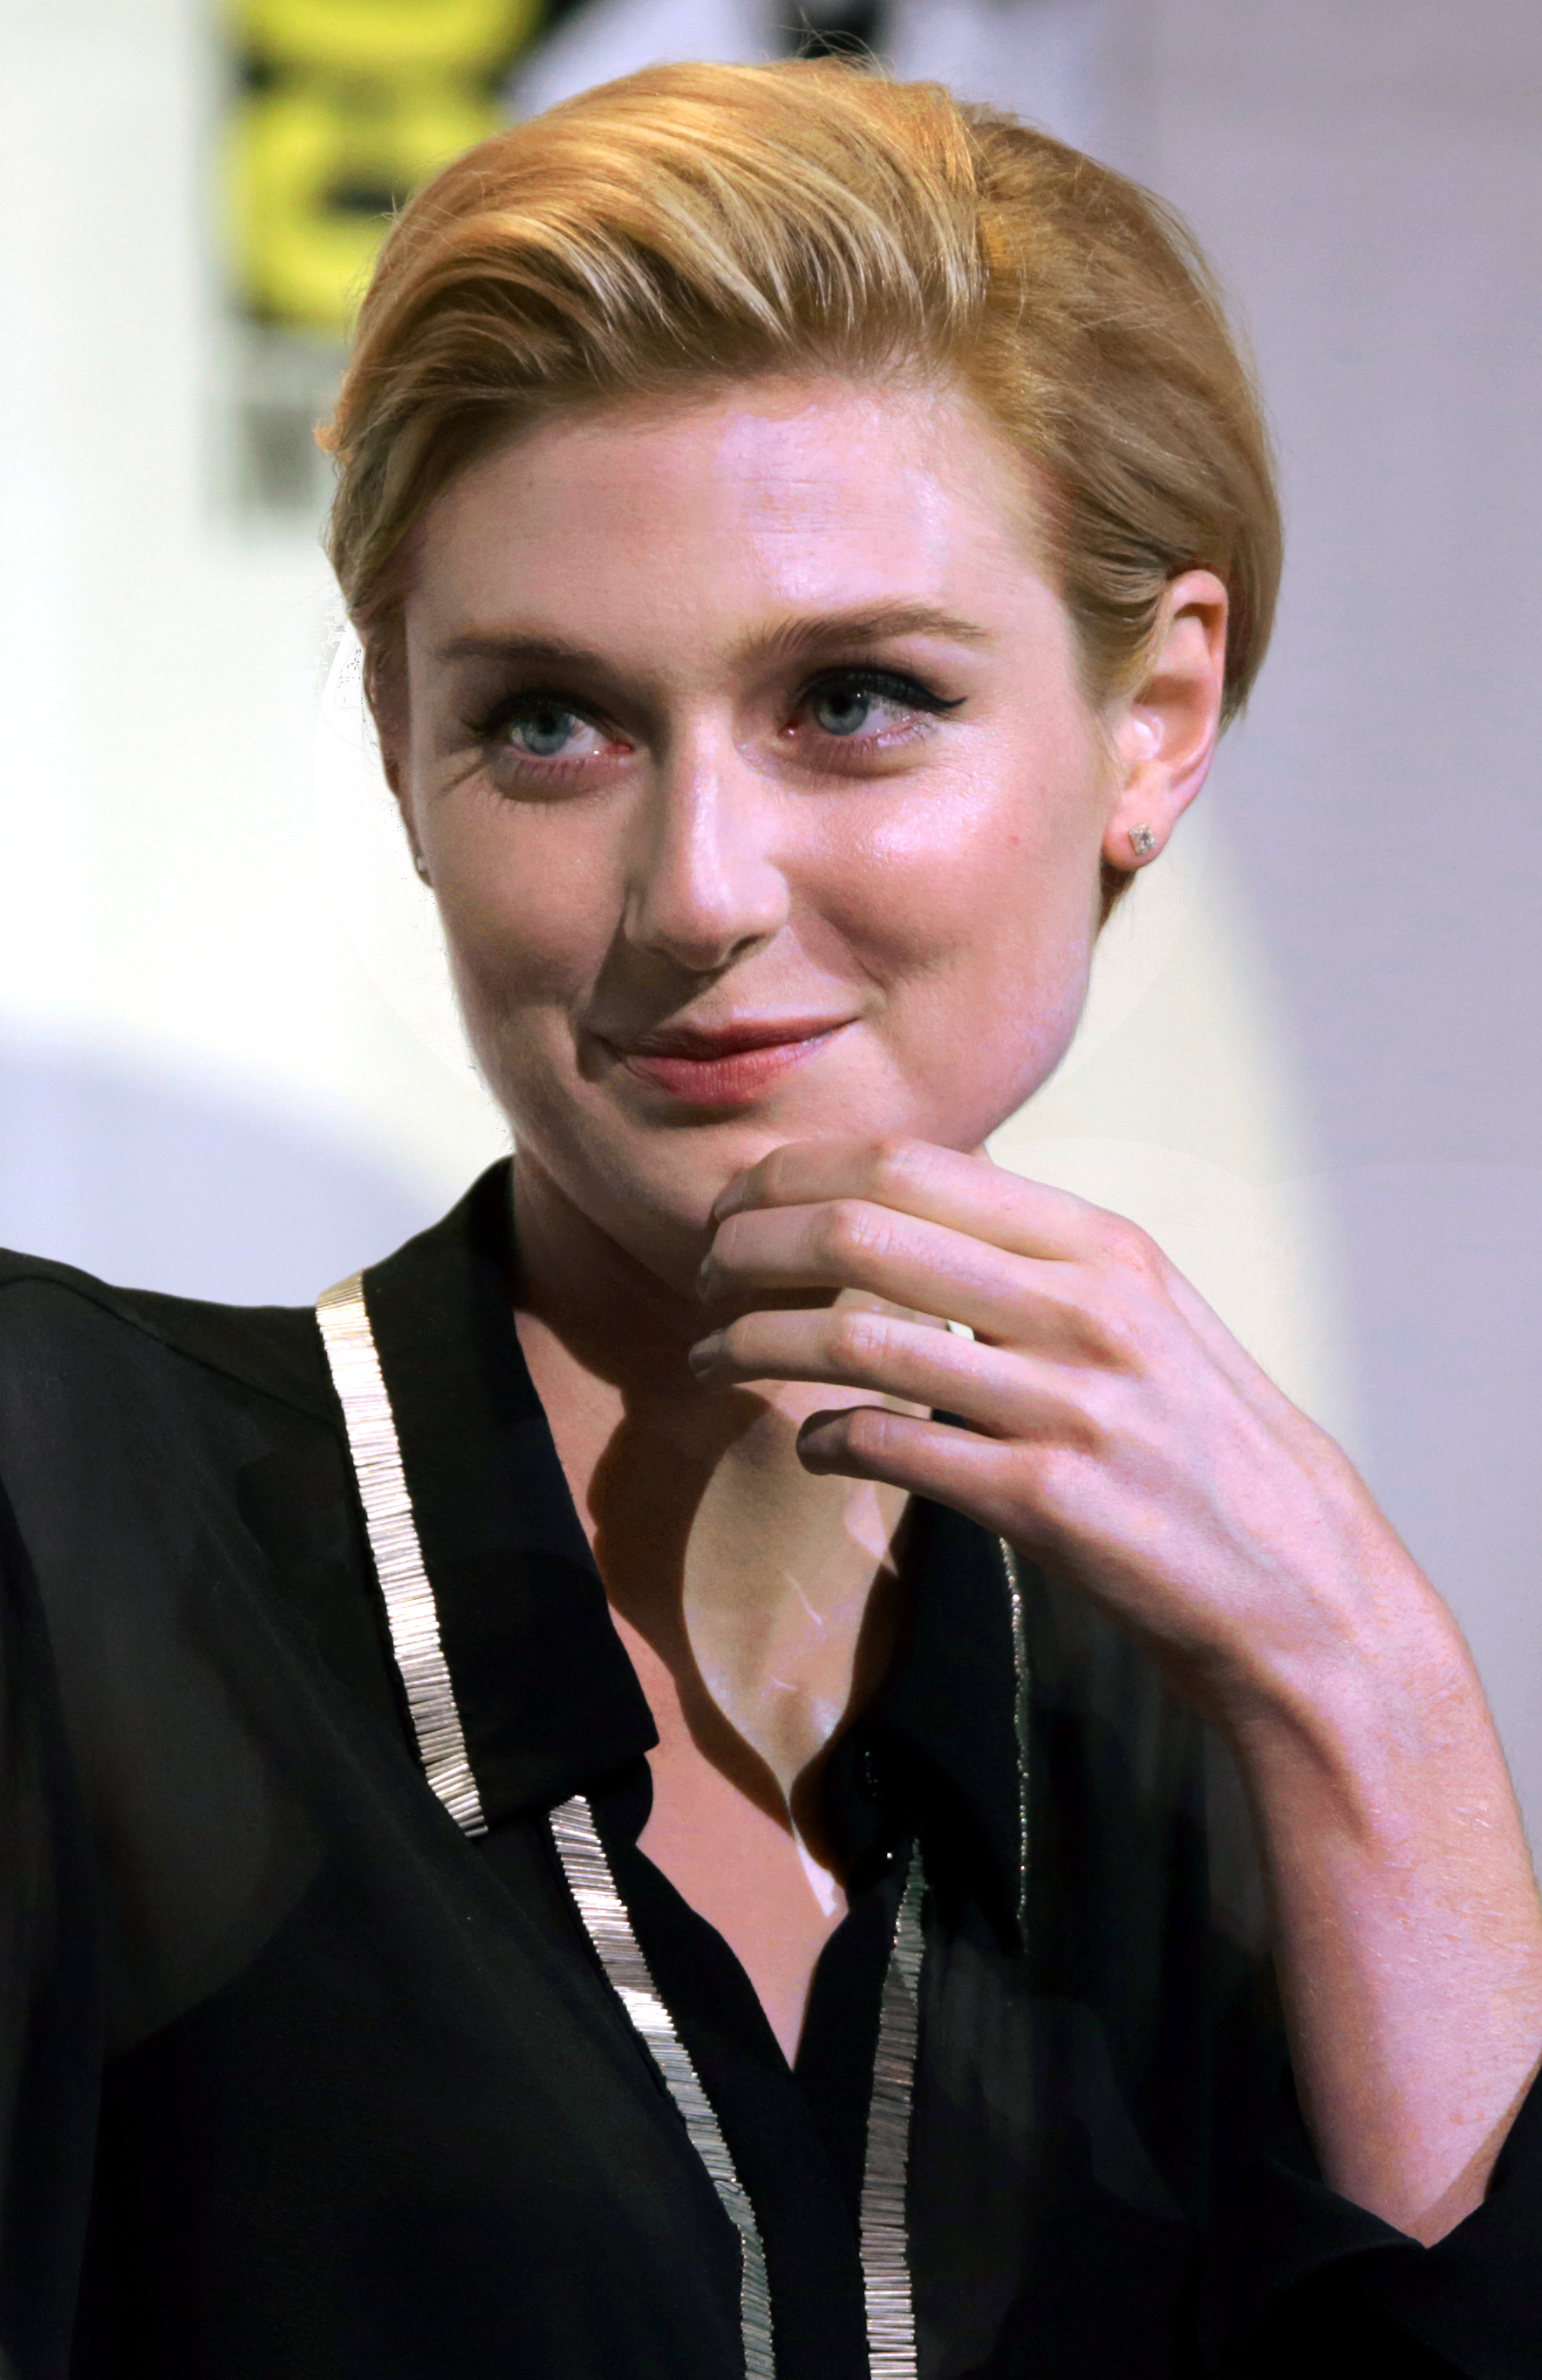 The 30-year old daughter of father (?) and mother(?) Elizabeth Debicki in 2020 photo. Elizabeth Debicki earned a  million dollar salary - leaving the net worth at 1.9 million in 2020